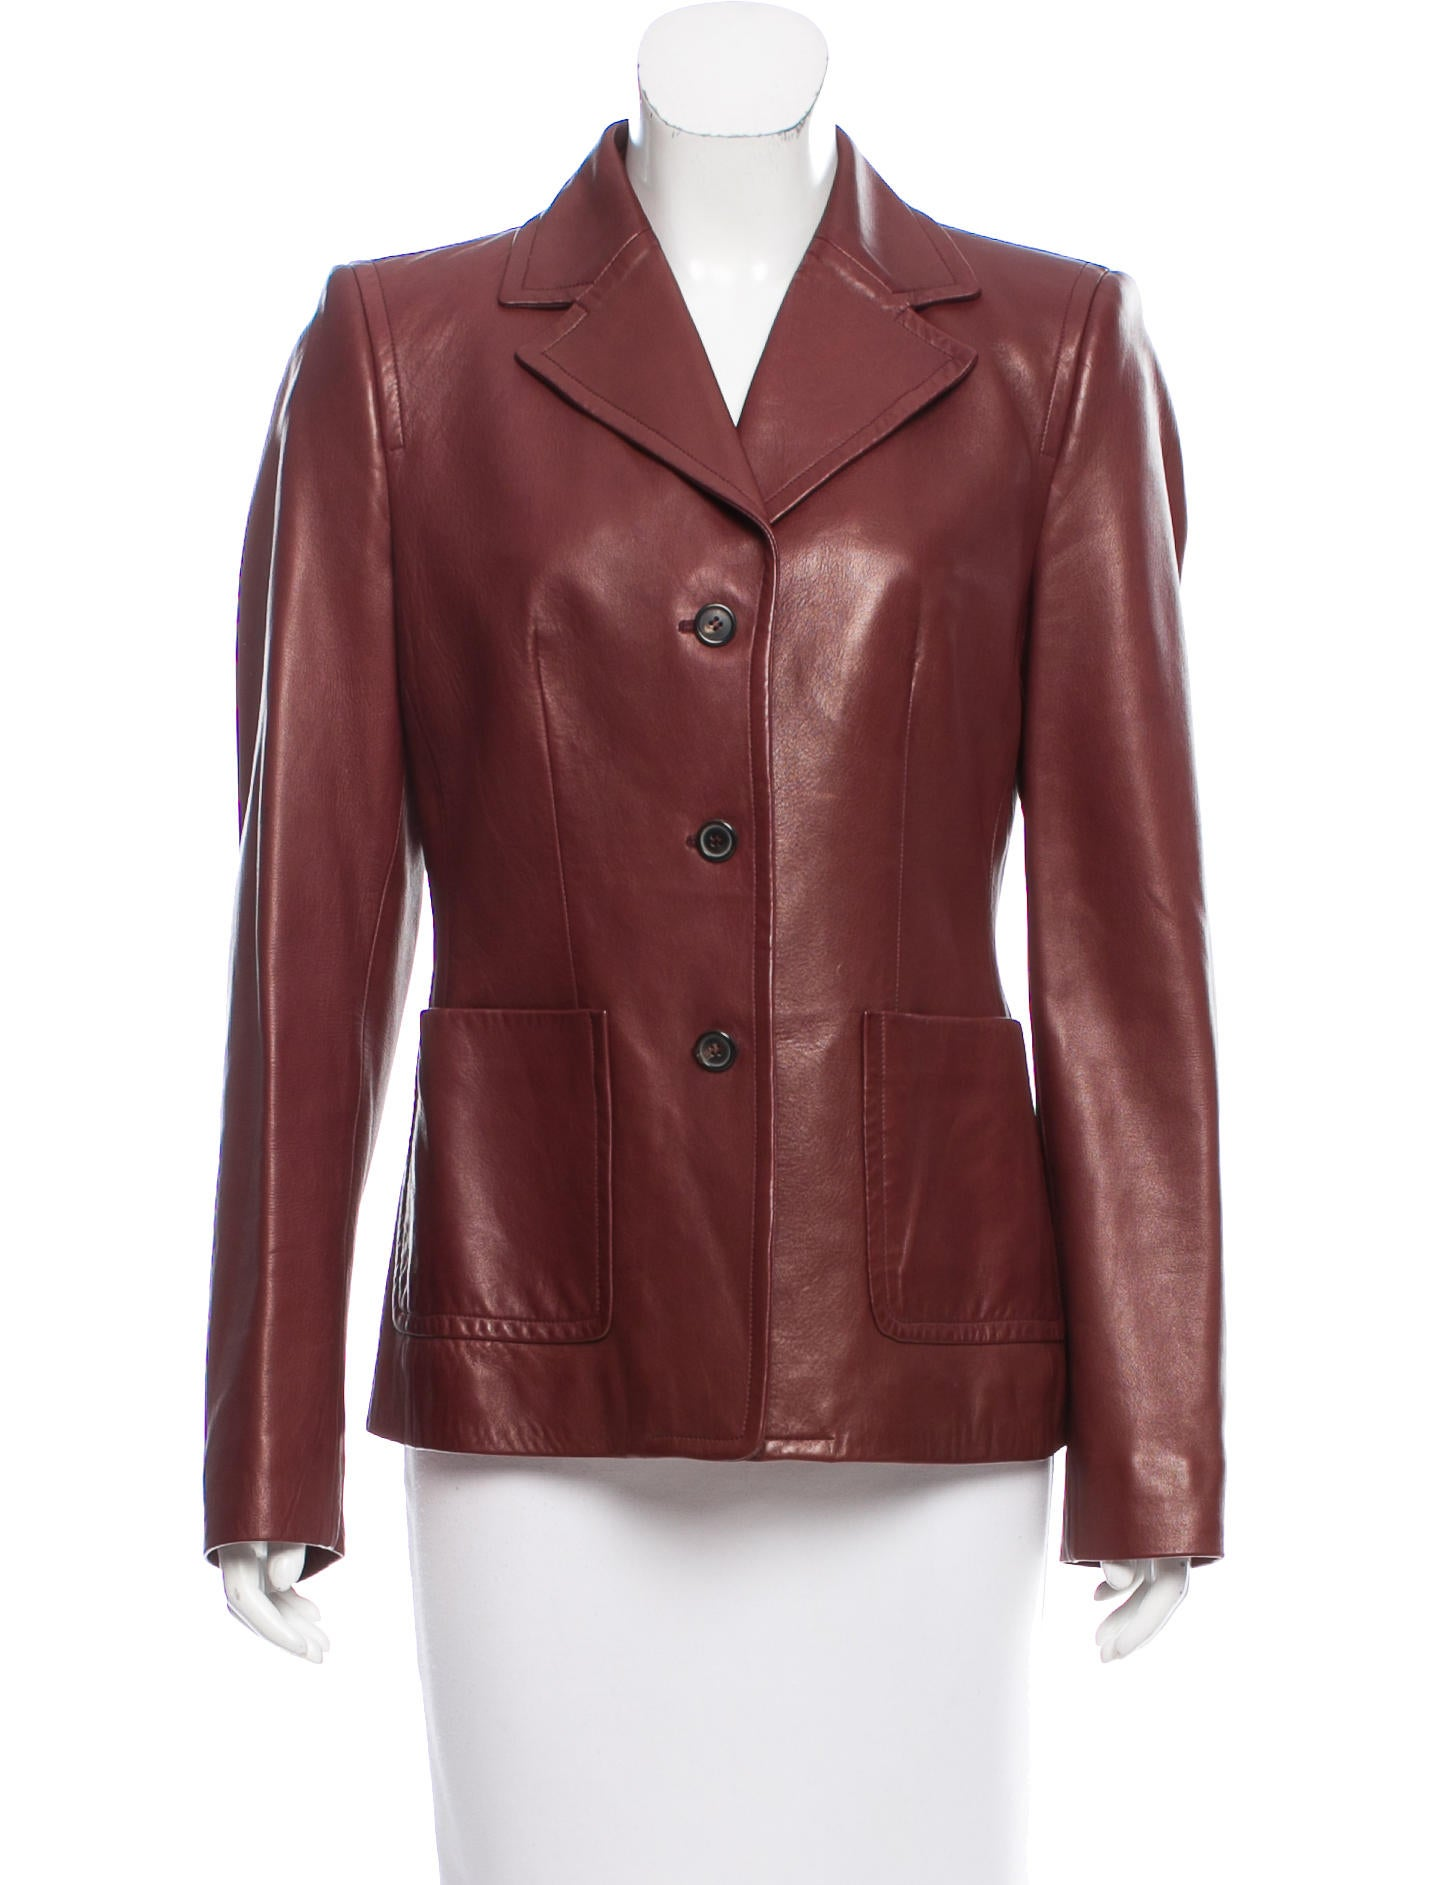 michael kors structured leather blazer clothing mic56631 the realreal. Black Bedroom Furniture Sets. Home Design Ideas